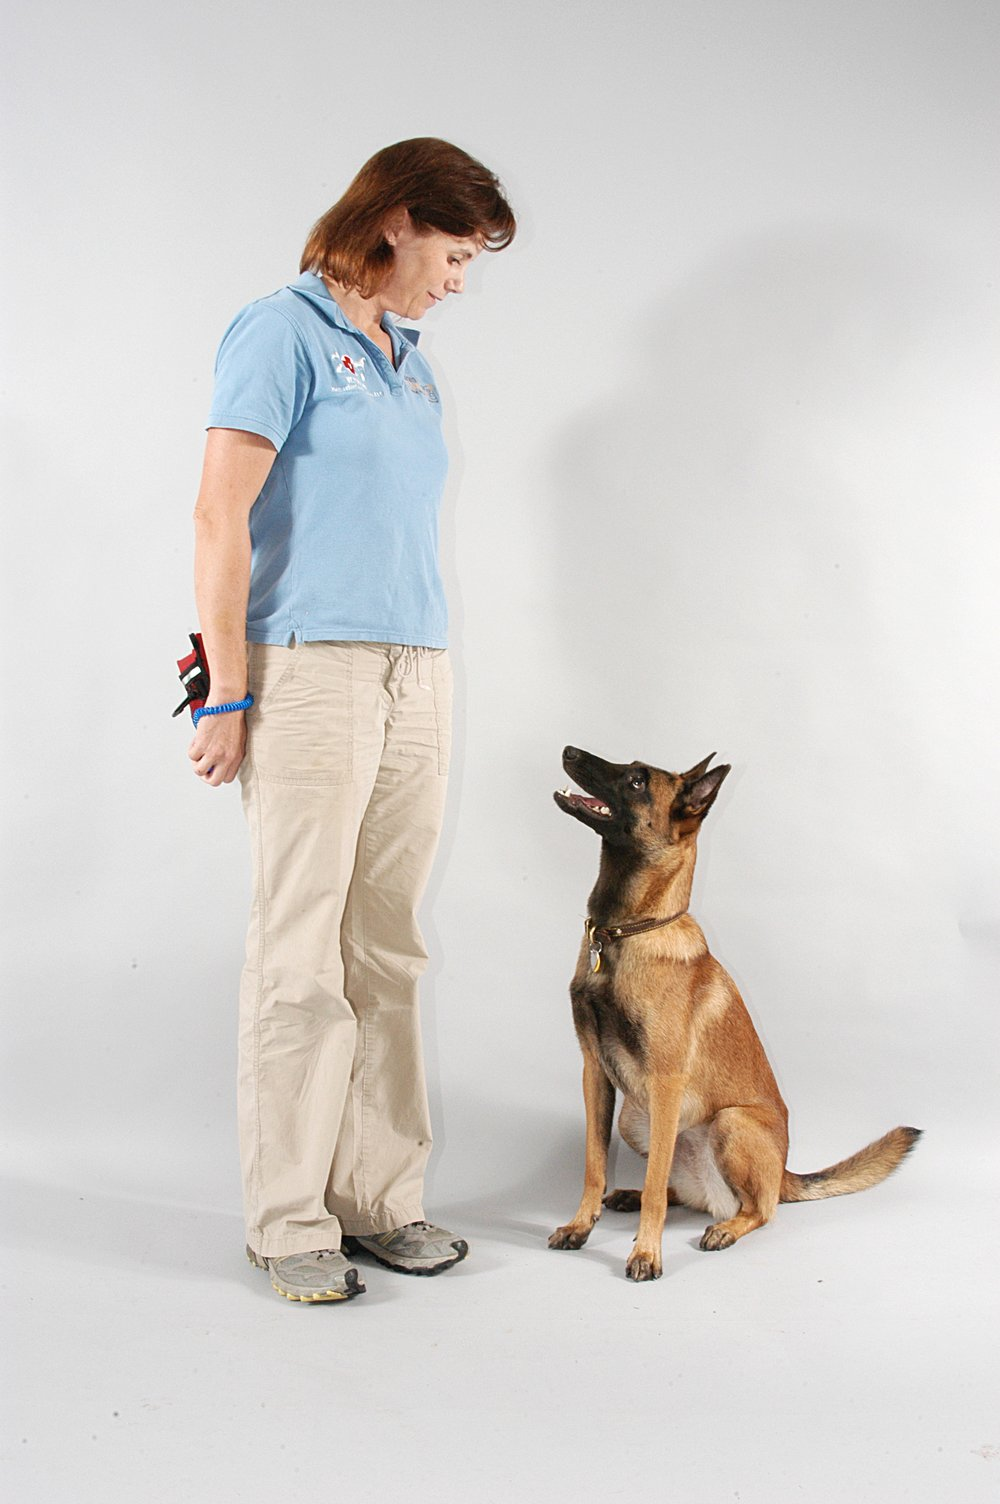 Best dog trainer seminars and webinars for dog aggression, dog training, leash reactivity, separation anxiety, fear free, vet handling.